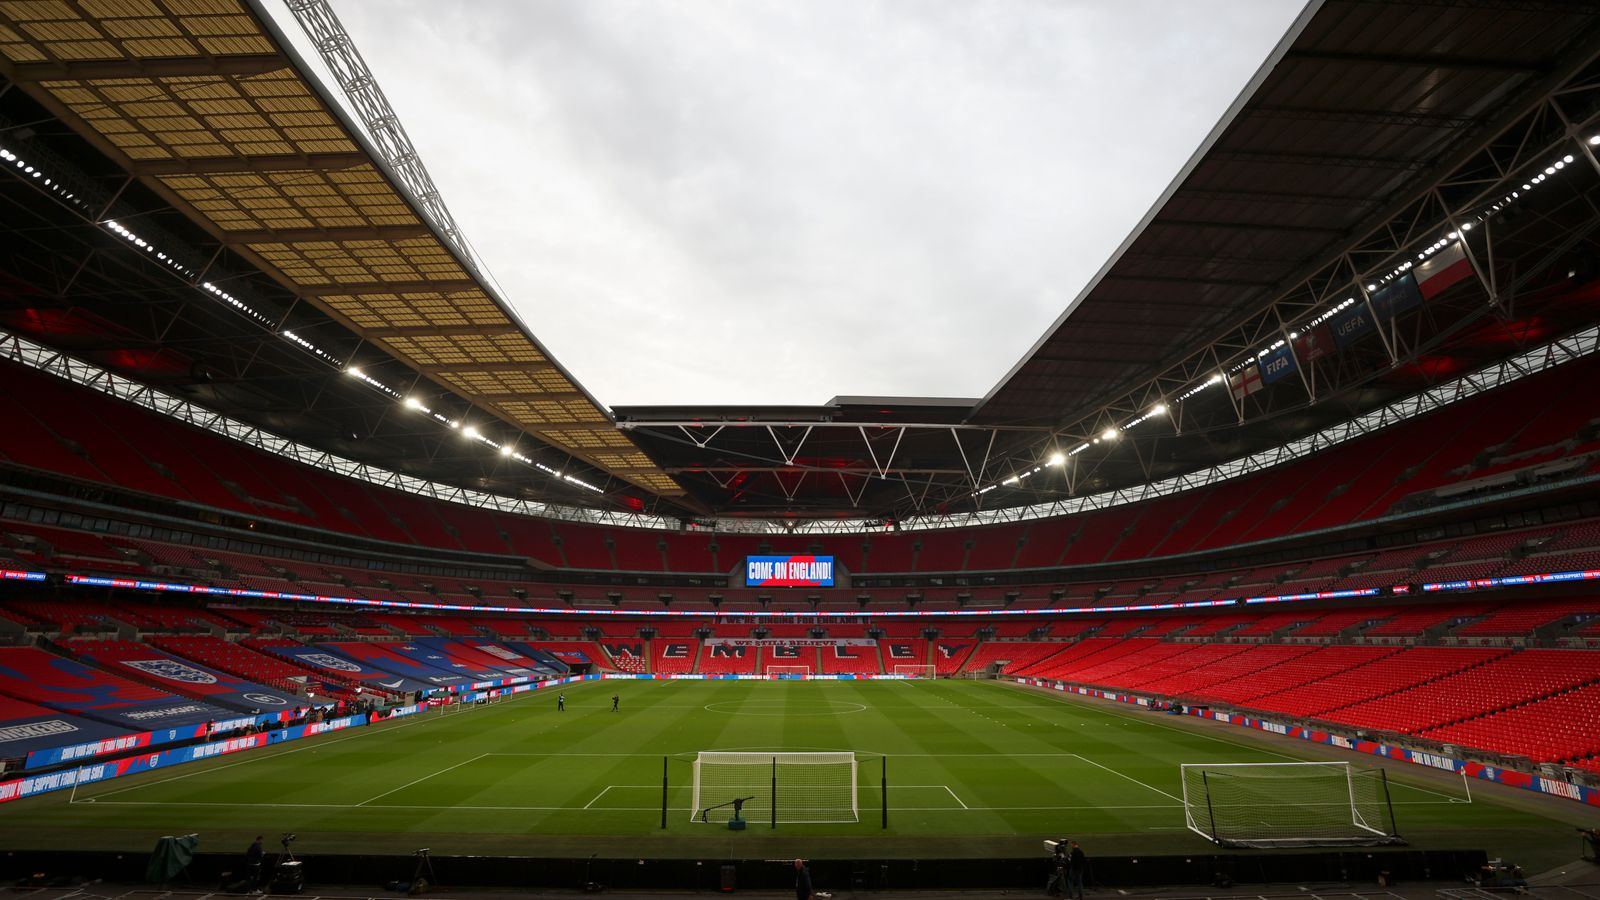 8,000 spectators to be allowed